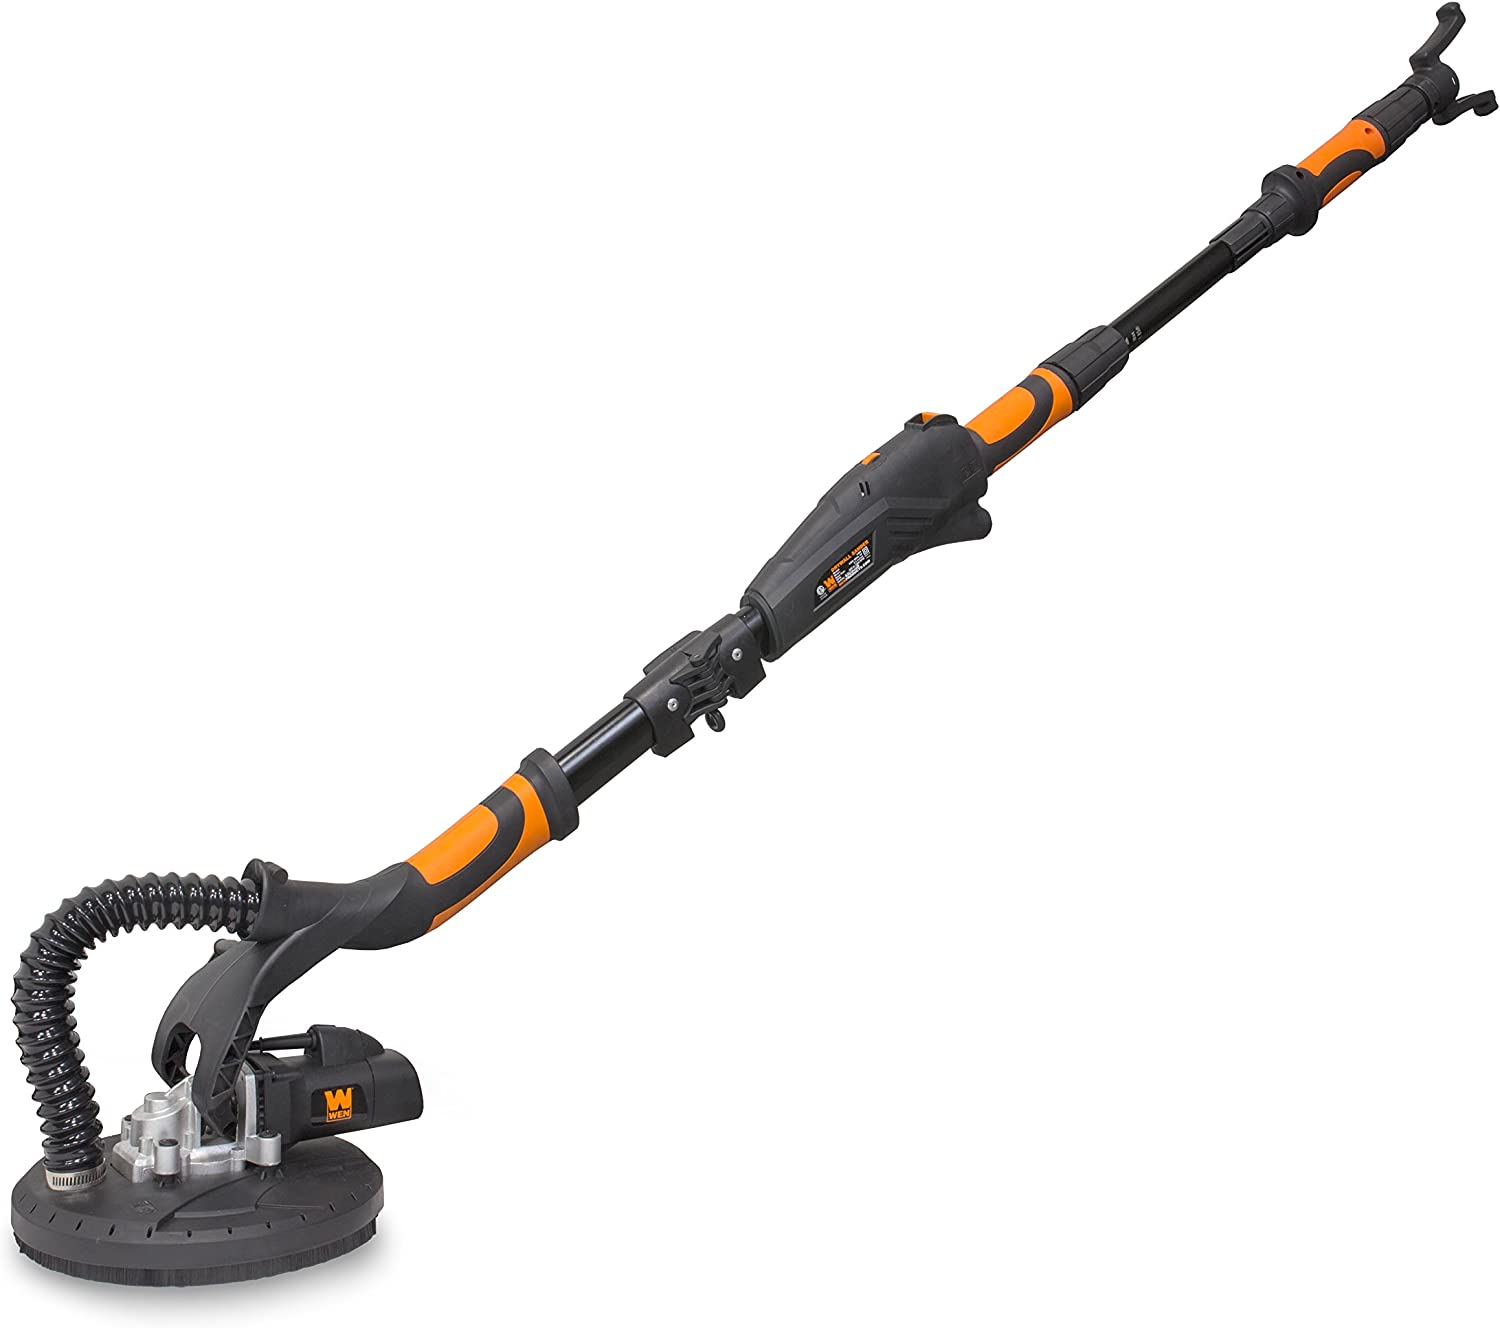 WEN 6369 Variable Speed 5 Amp Drywall Sander with 15' Hose